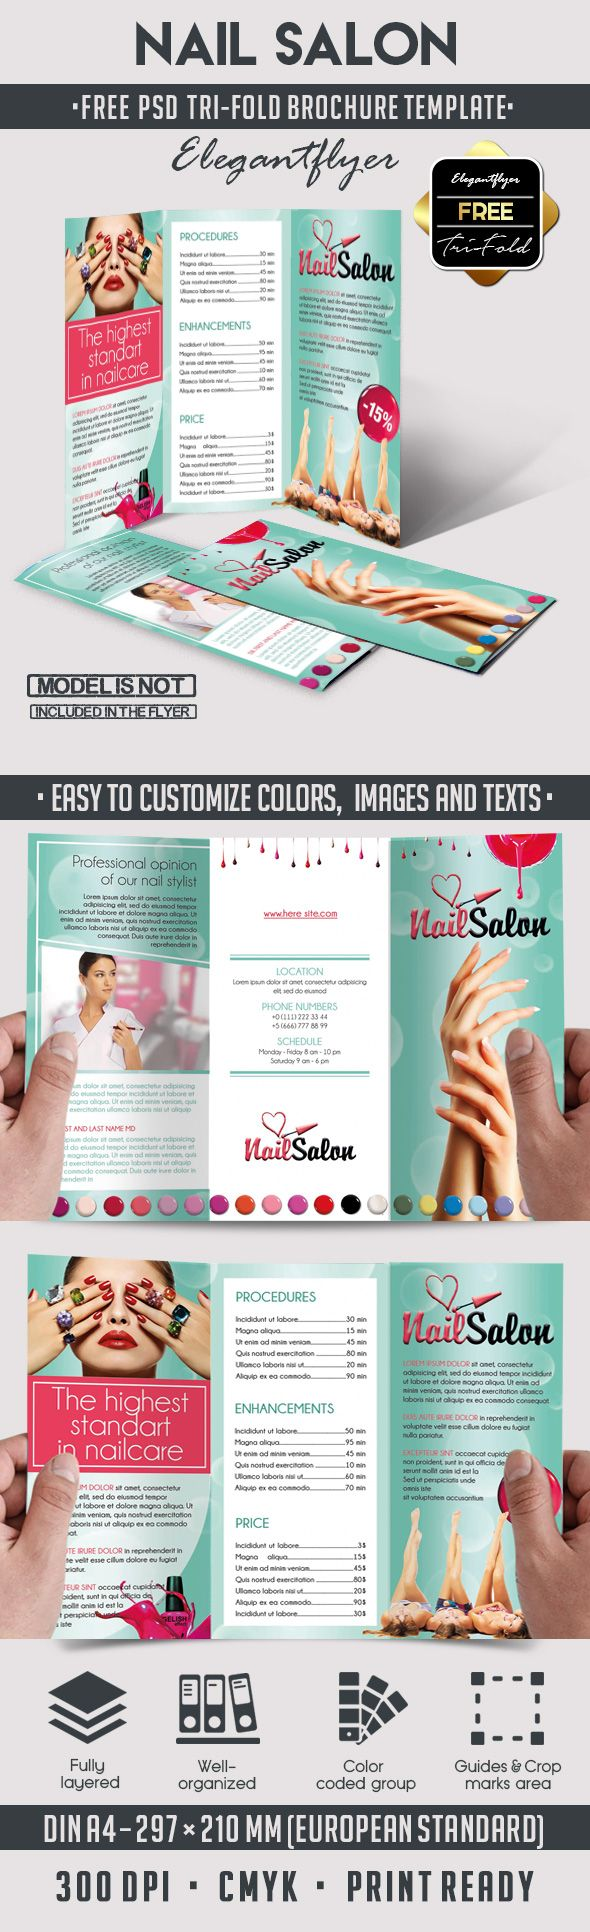 Best Free Brochure Templates Images On Pinterest Brochures - Templates for brochures free